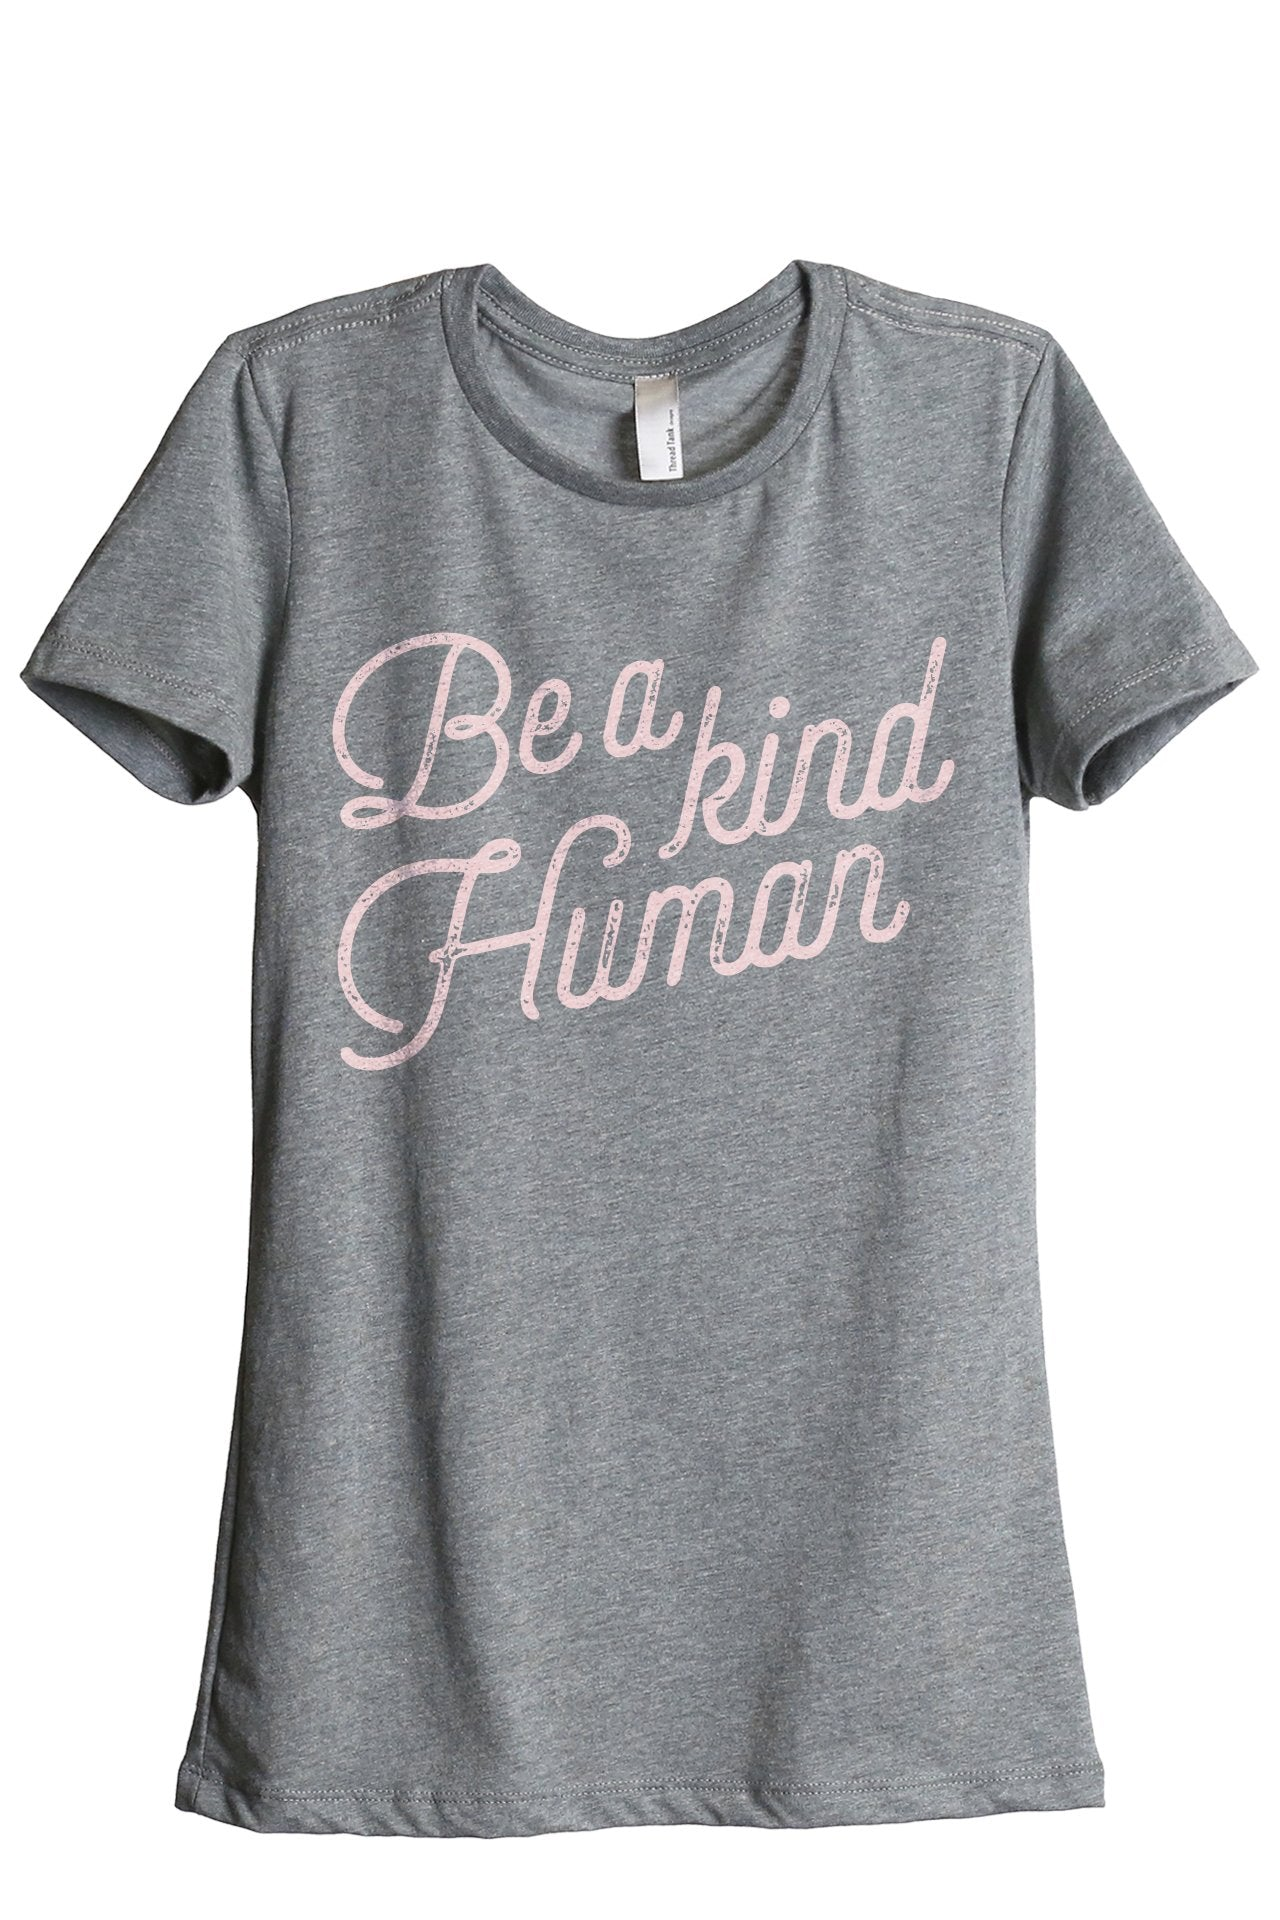 Be A Kind Human - Thread Tank | Stories You Can Wear | T-Shirts, Tank Tops and Sweatshirts